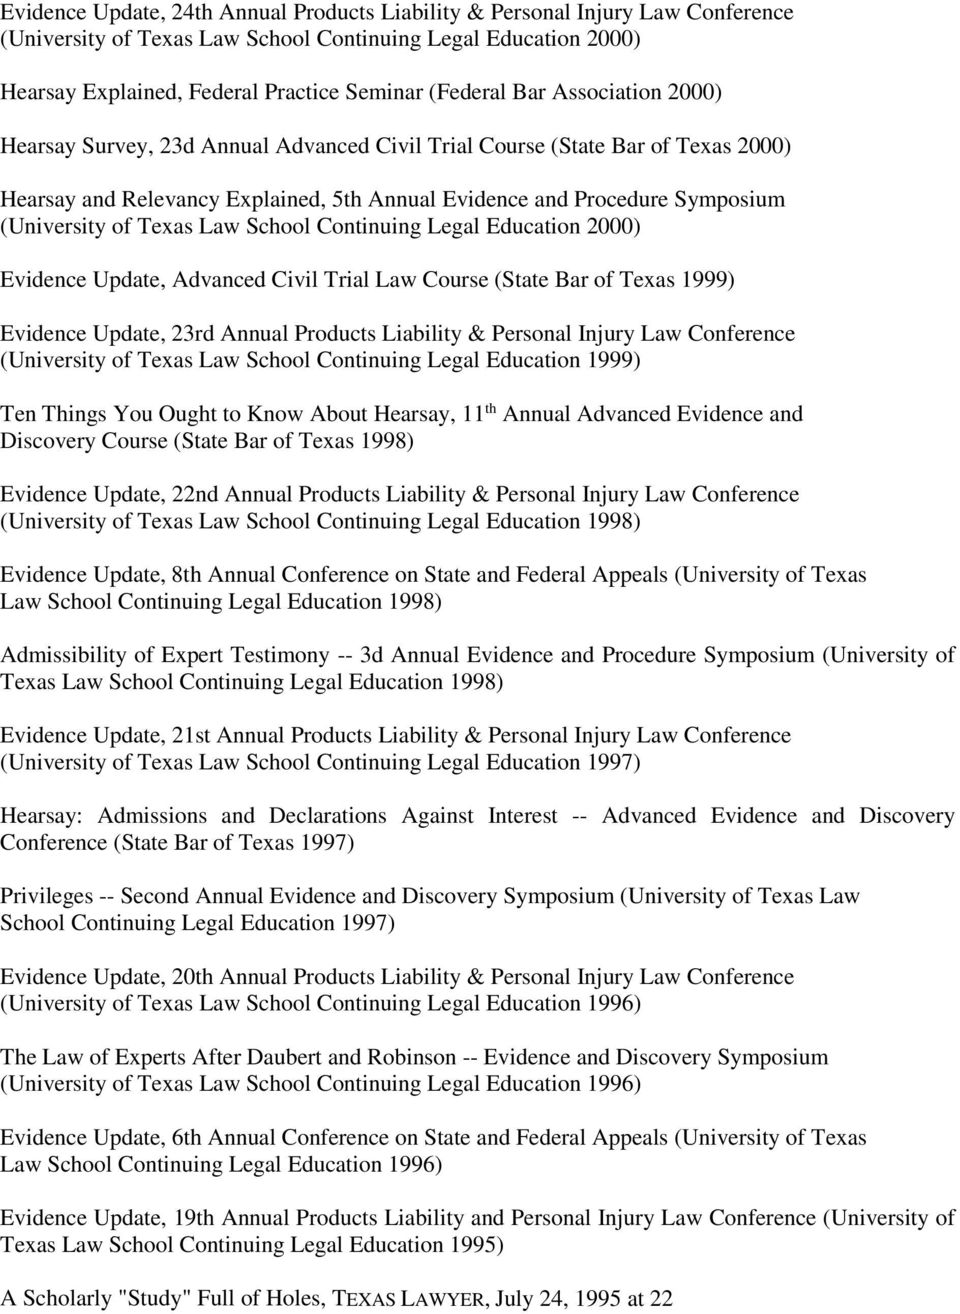 Texas Law School Continuing Legal Education 2000) Evidence Update, Advanced Civil Trial Law Course (State Bar of Texas 1999) Evidence Update, 23rd Annual Products Liability & Personal Injury Law